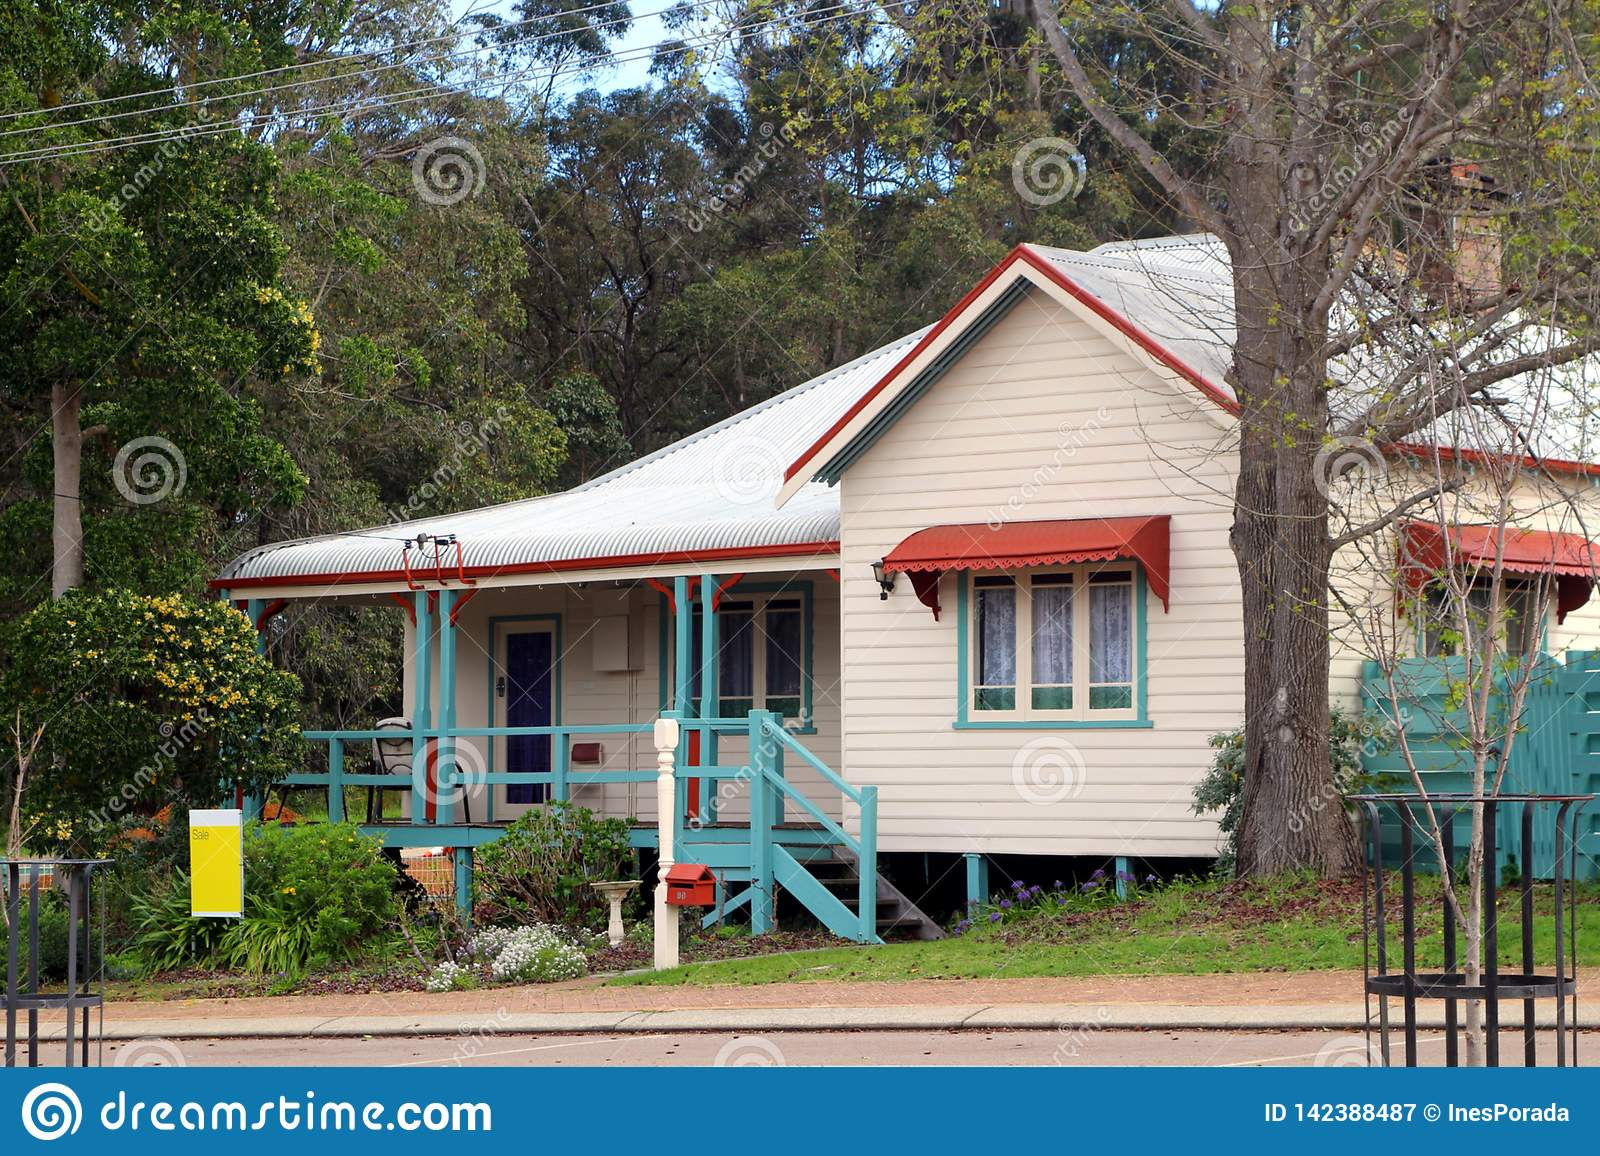 Australian Residential Home With Underfloor Area For